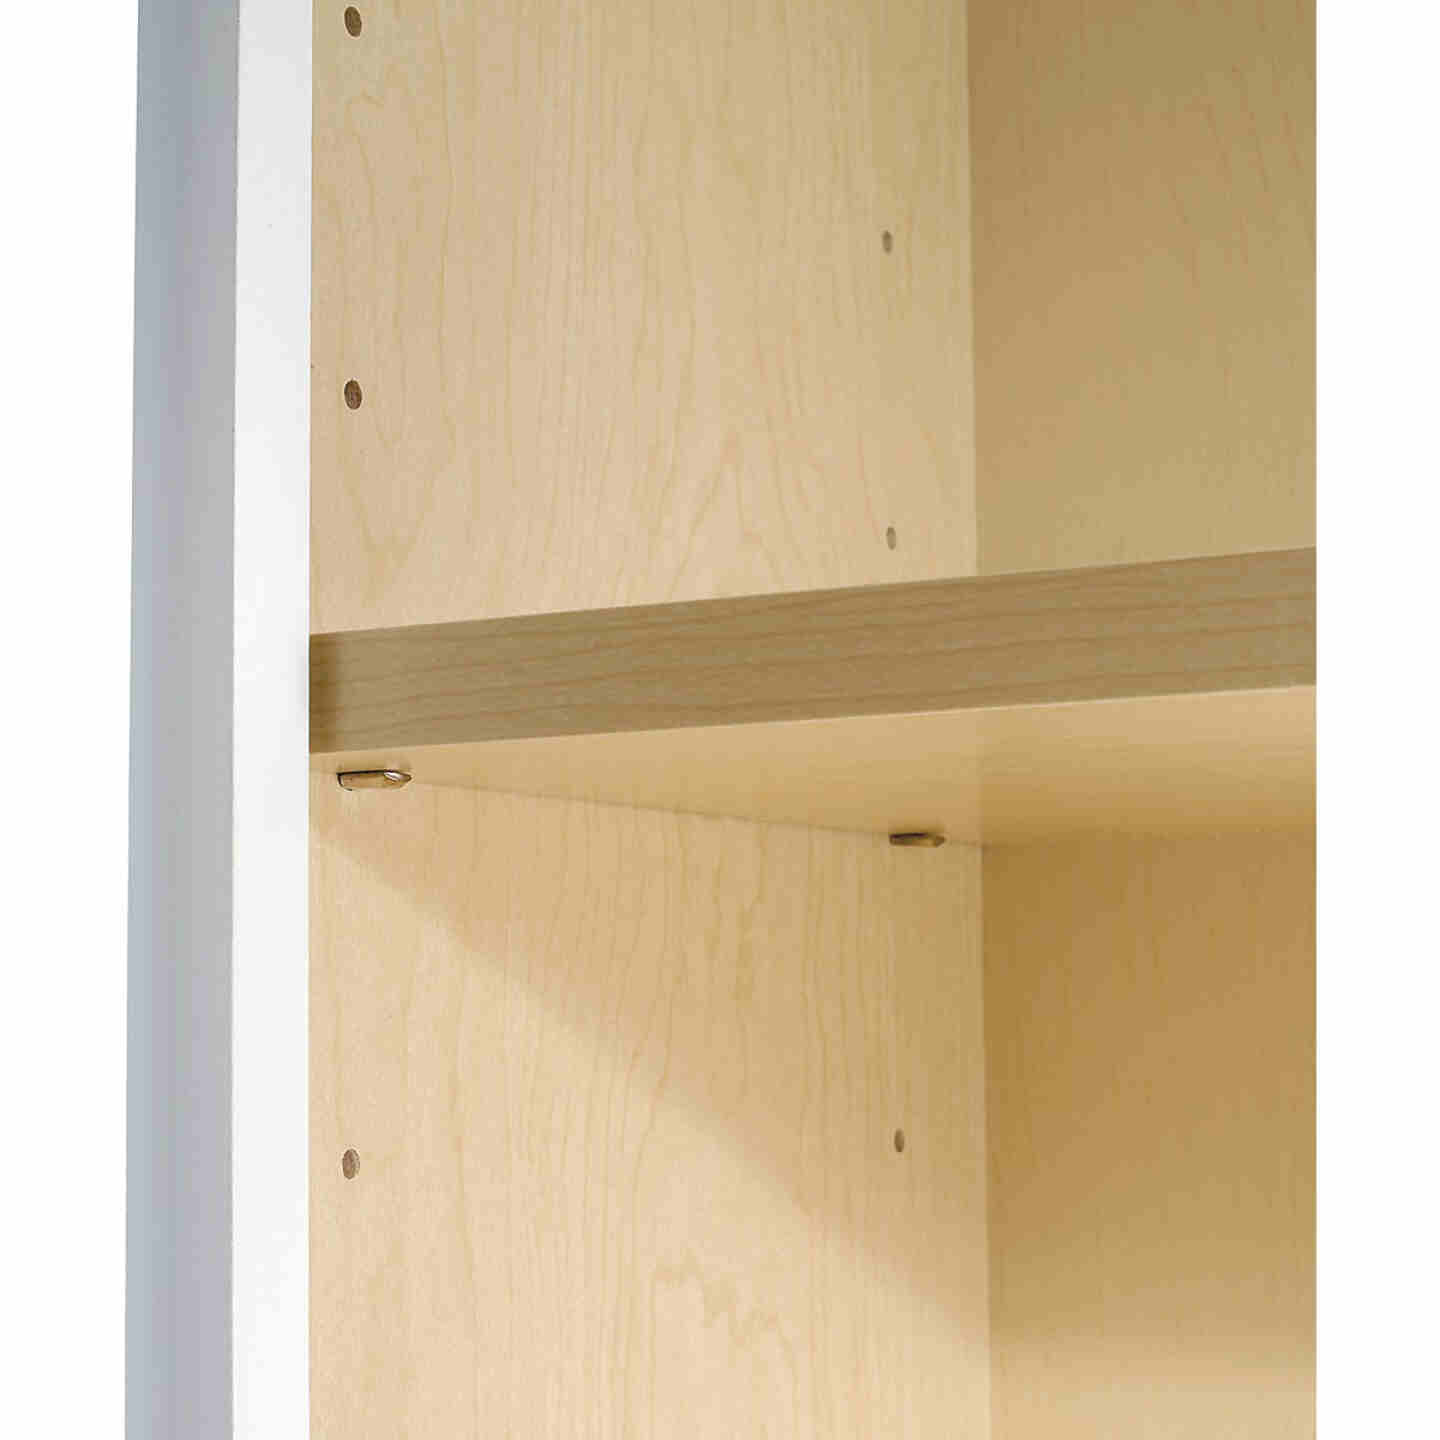 Continental Cabinets Andover Shaker 36 In. W x 30 In. H x 12 In. D White Thermofoil Wall Kitchen Cabinet Image 5